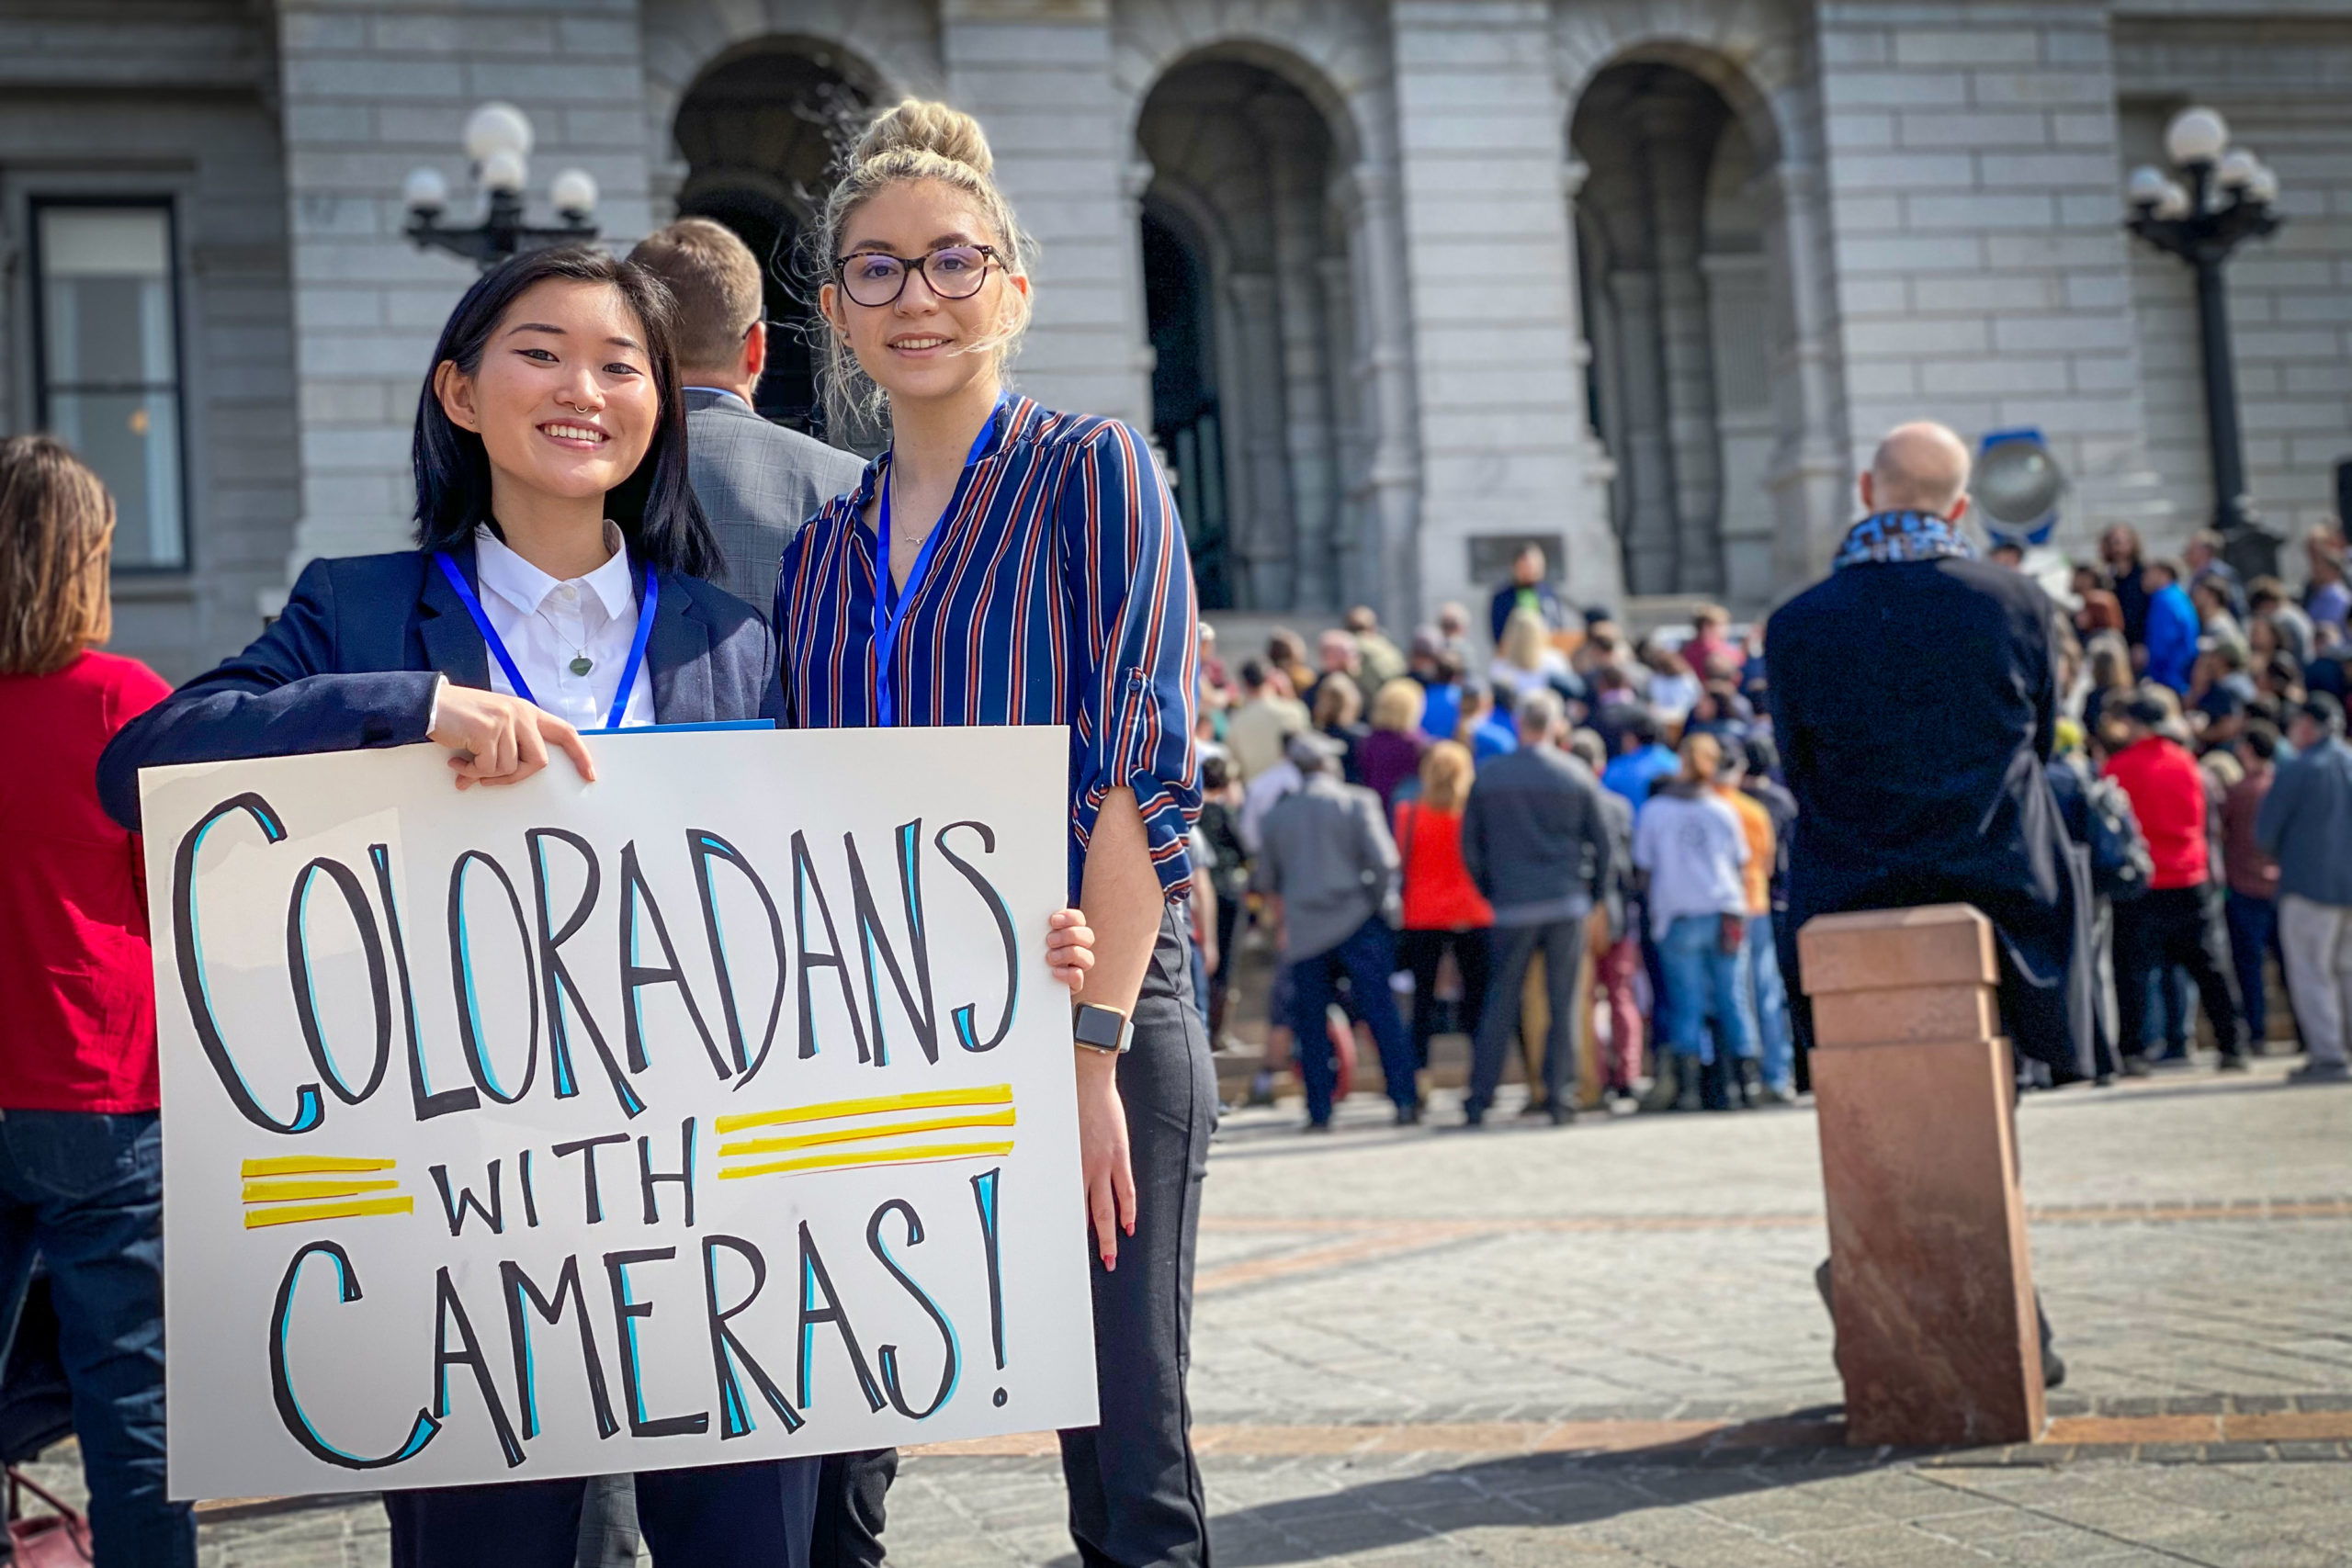 University of Colorado Denver students Marin Lepore and Monique Salas want to pursue careers in television or film, but feel like there aren't enough opportunities to do so in Colorado. That's why they've come to the Cinema Day rally outside the Colorado State Capitol on March 6, 2020.